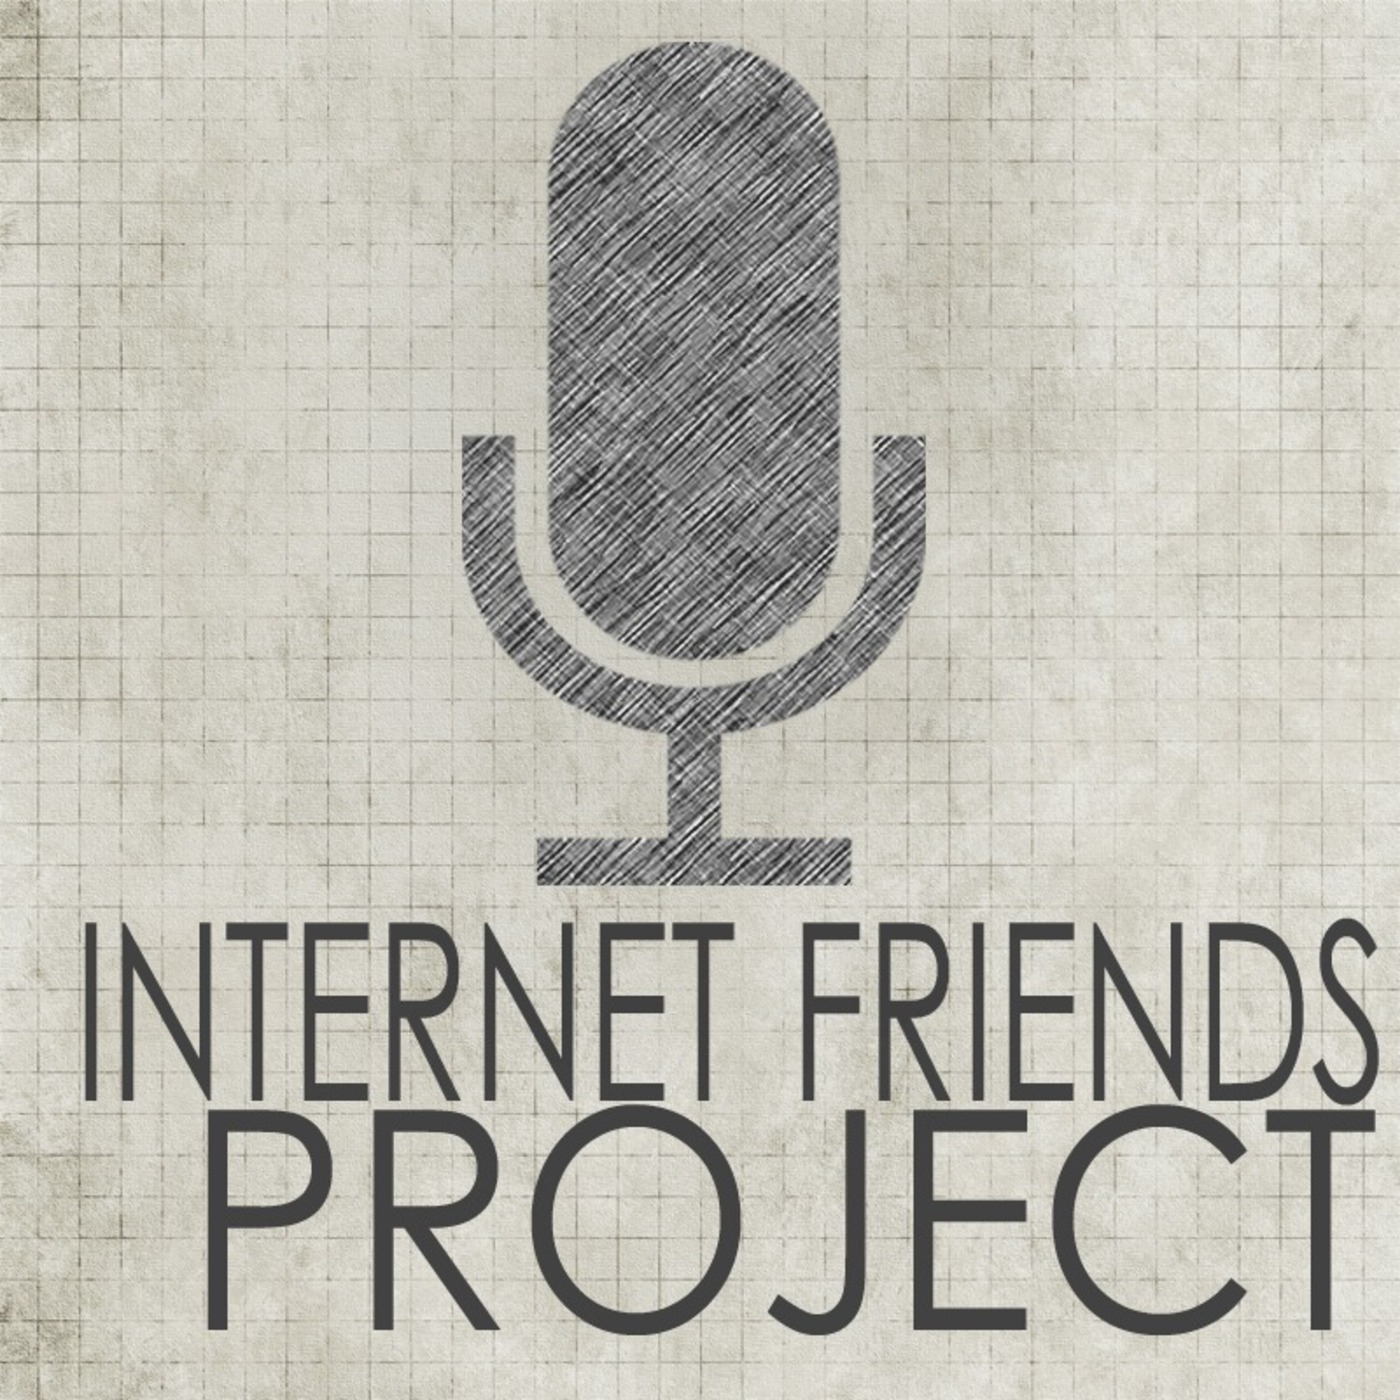 INTERNET FRIENDS PROJECT